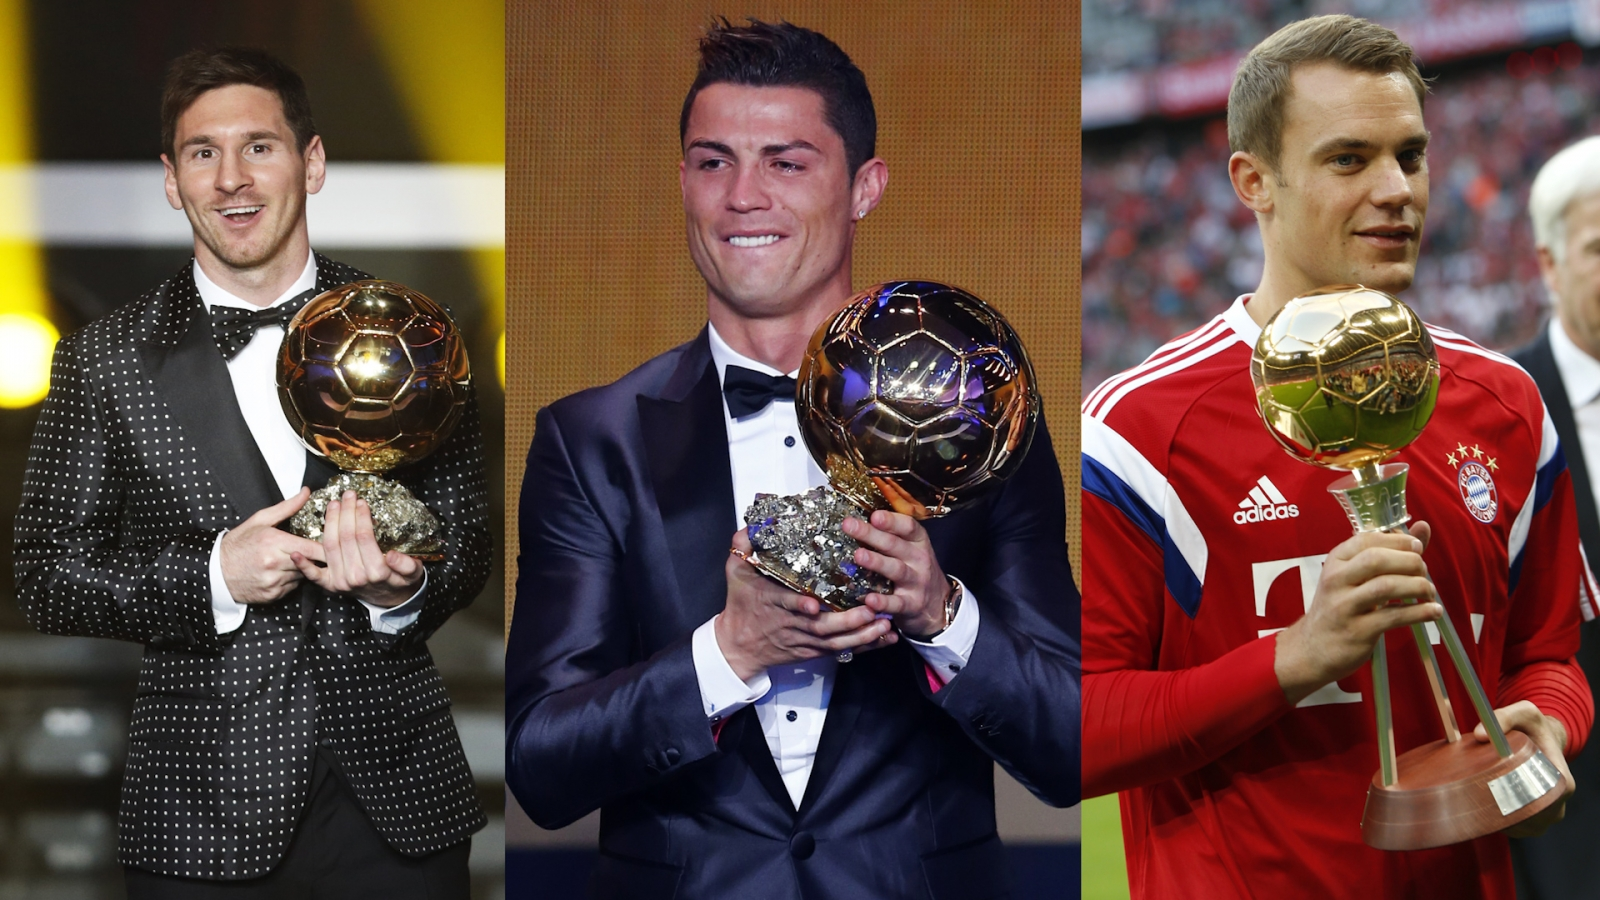 Sport Spotlight: Why Manuel Neuer should beat Cristiano Ronaldo to Ballon d'Or